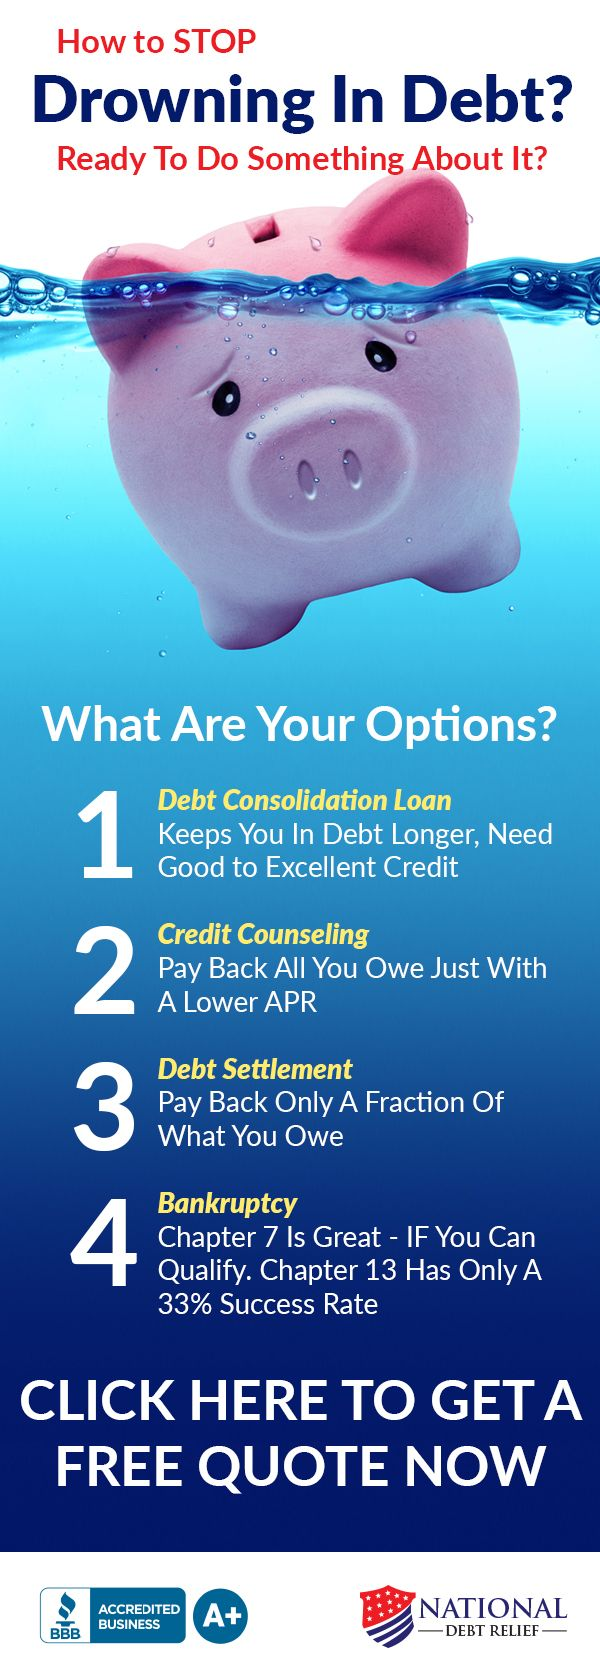 Drowning in debt? Drowning in debt can be a very stressful situation. There are several options to help with your debt. See if #1 rated National Debt Relief can help for 2017. If you have over $10,000 in unsecured debt you can get a free quote to see how much you can save with no obligation. BBB A+ accredited with a 100% money back guarantee.